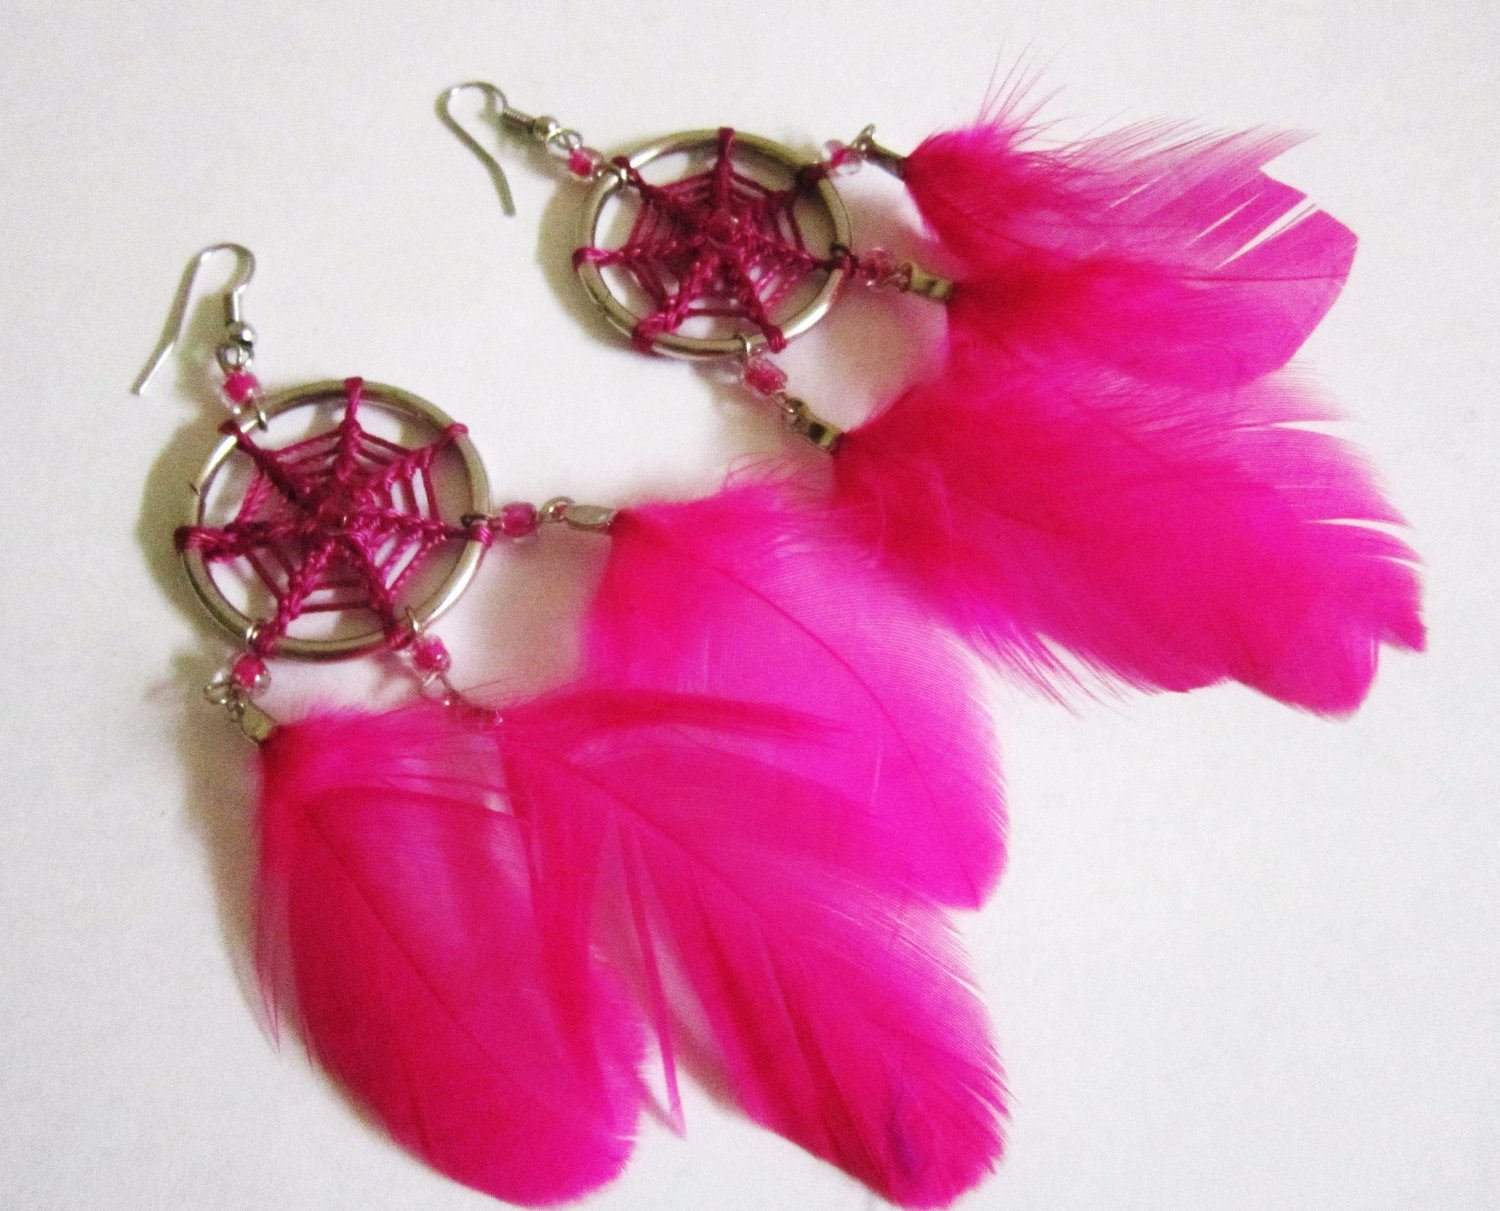 Amazon.com: wholesale lot 12 pairs dream catcher feathers earrings from peru: musical instruments